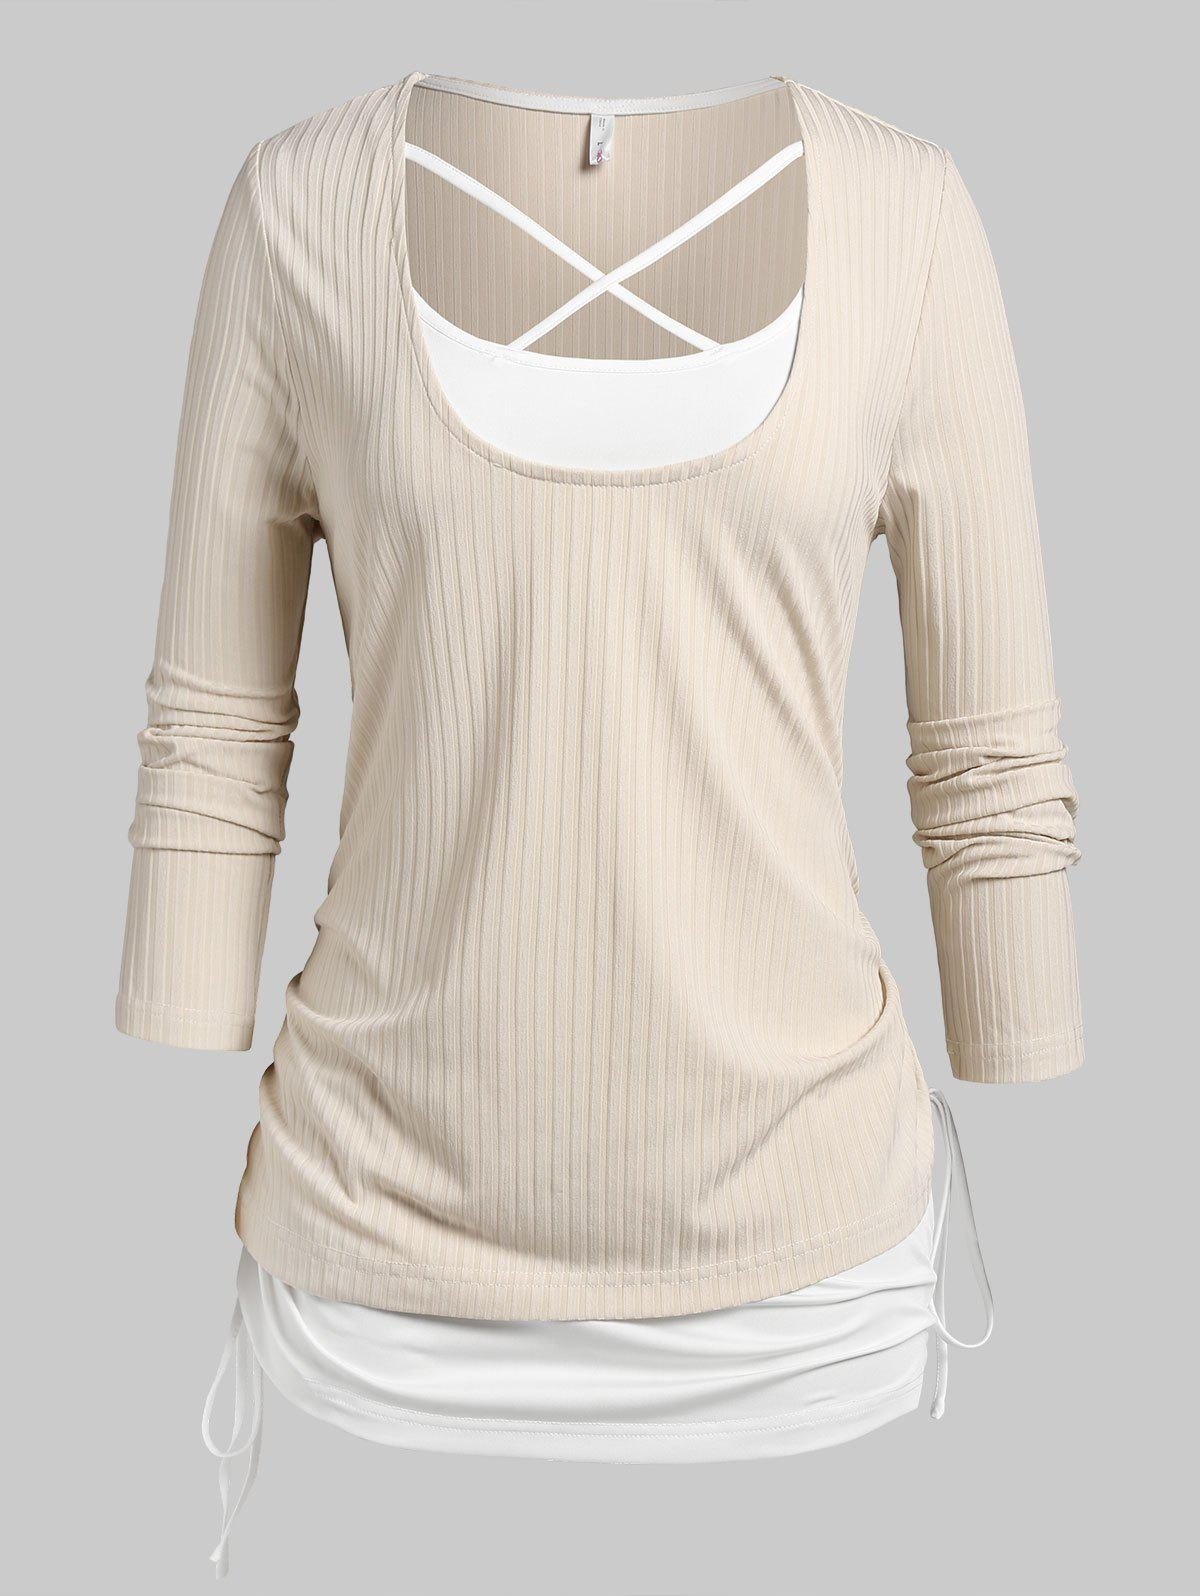 Plus Size Ribbed Tee and Crisscross Cinched Tank Top Set - LIGHT COFFEE 3X